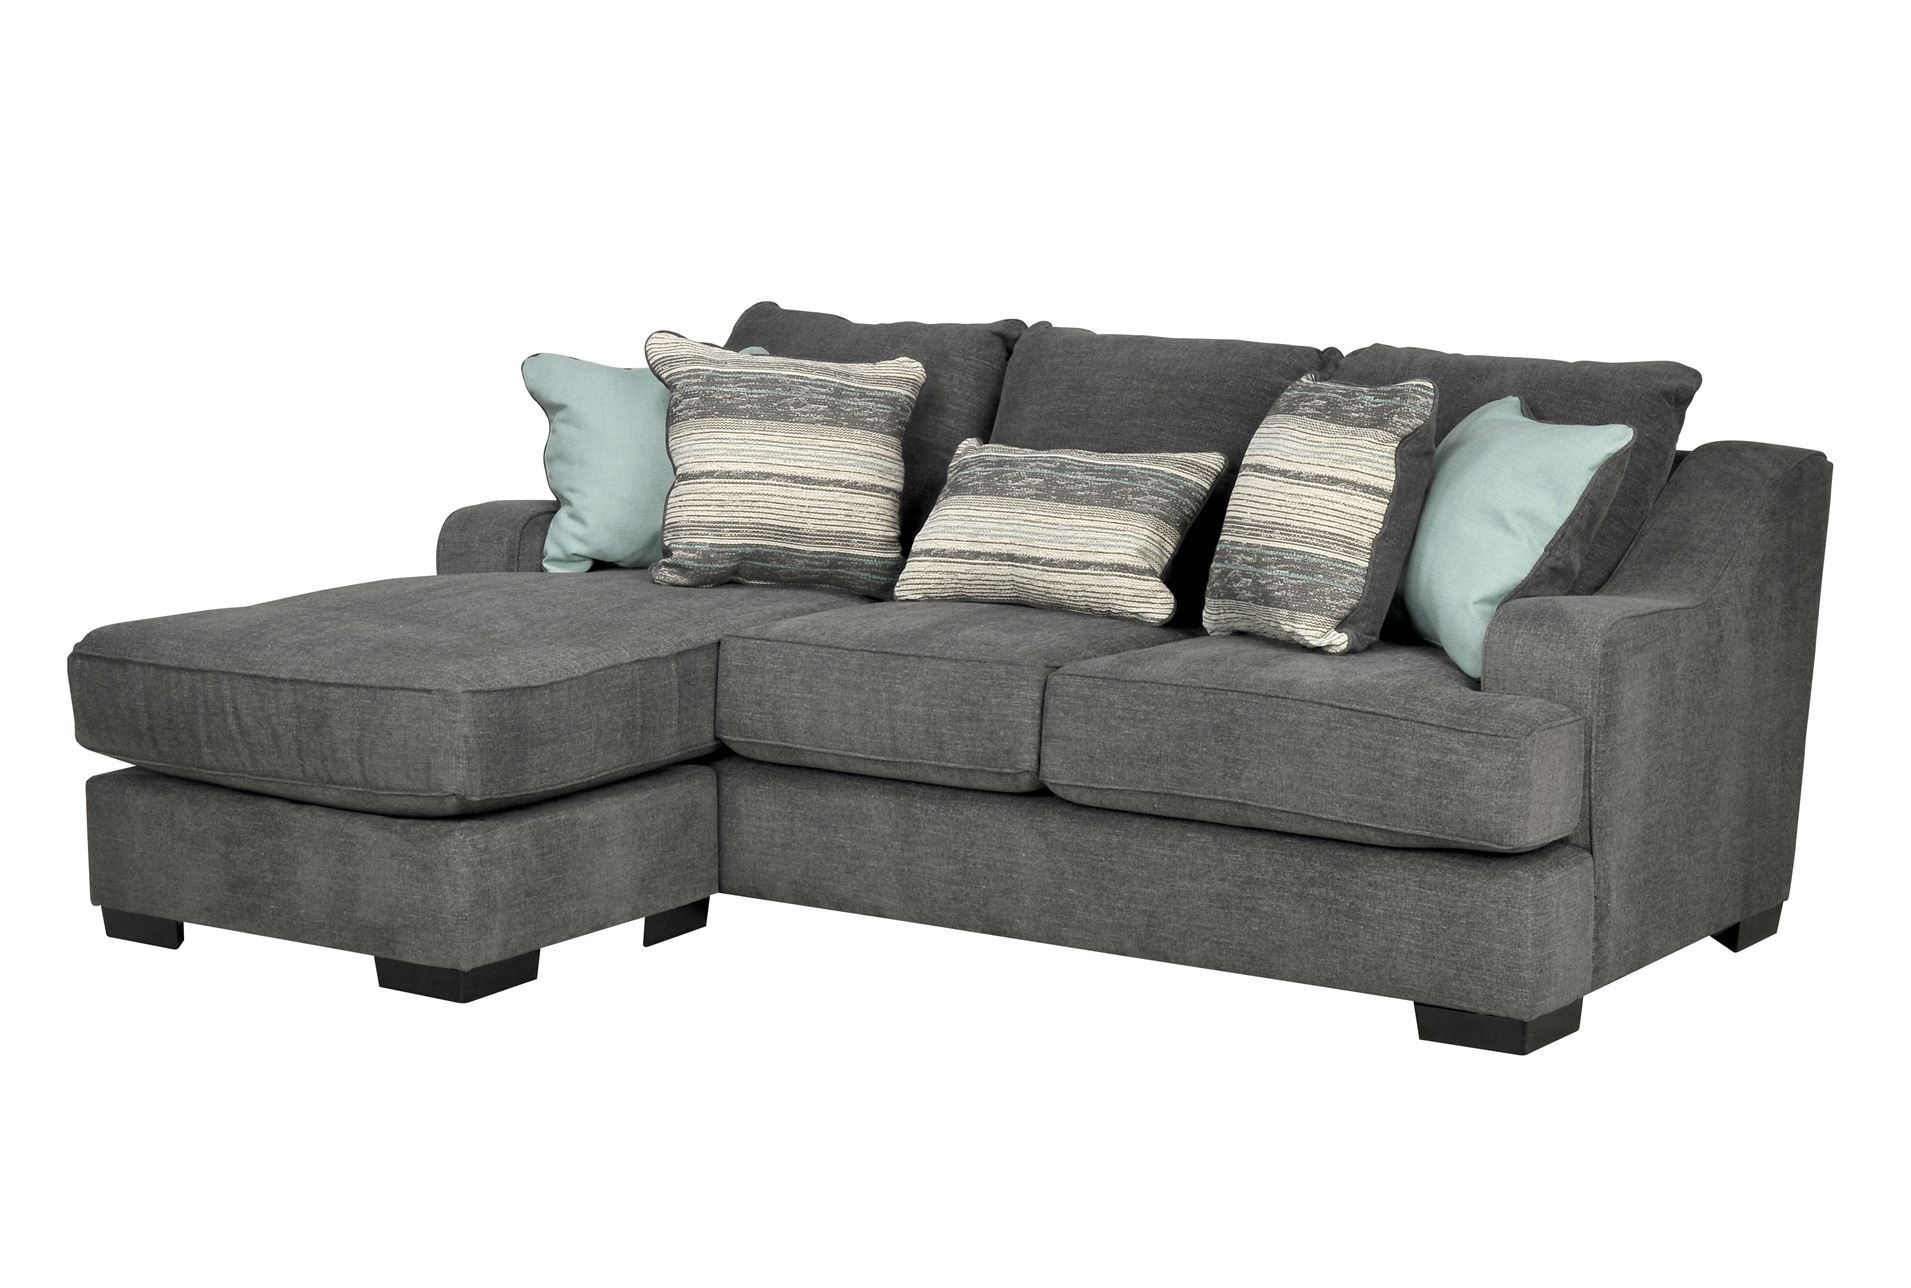 marco gray chaise sofa wall mounted bed rv value city